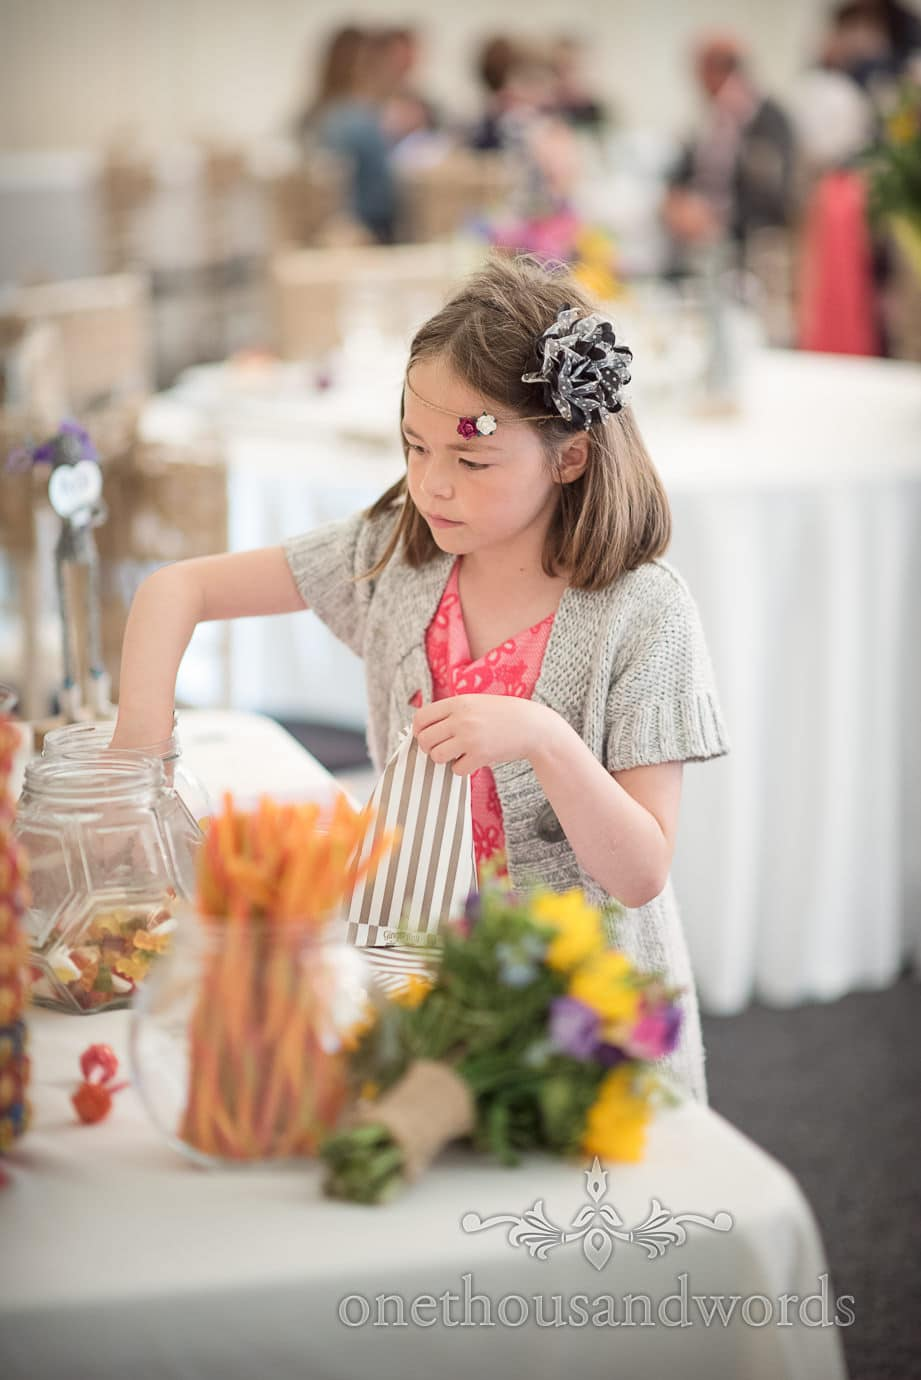 Child wedding guest with flowers in hair raids sweet table at The Old Vicarage Wedding